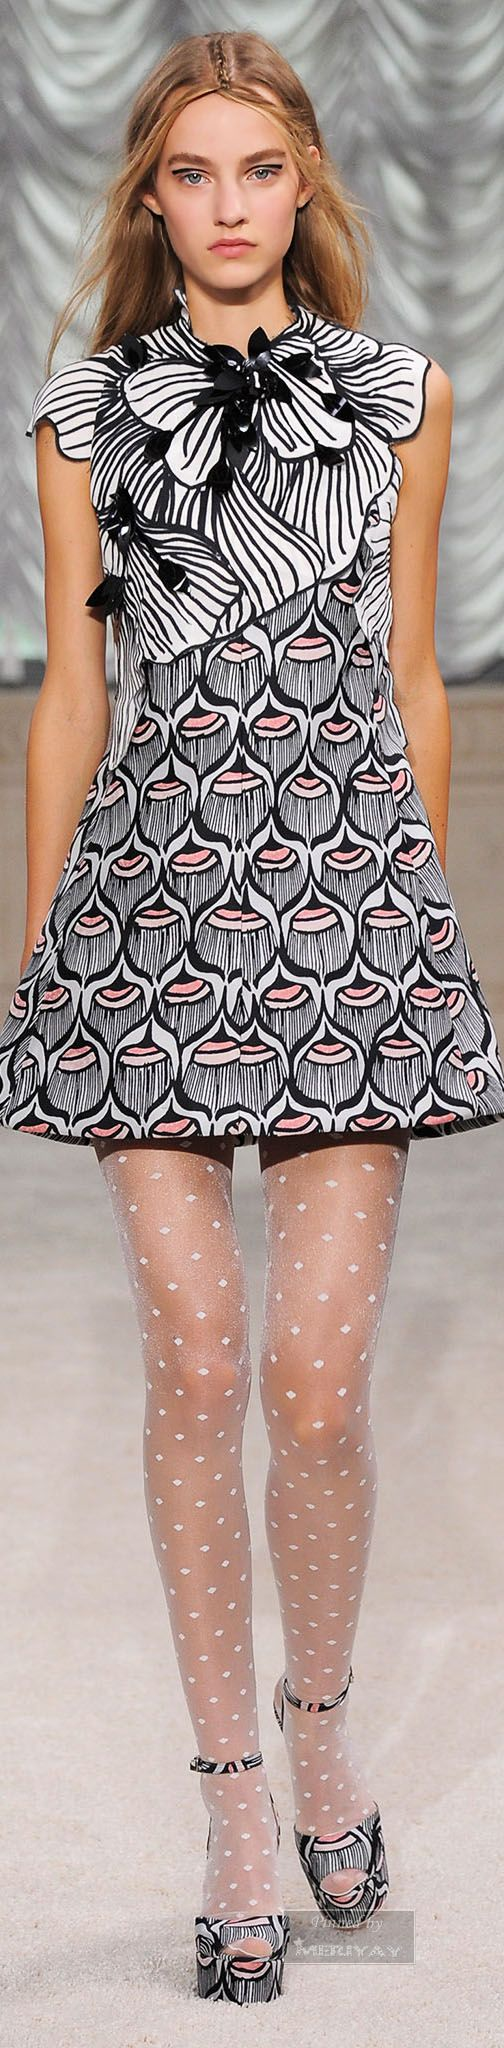 Giamba. Spring 2015. Very clever use of pattern, and I love the lightweight polka dot tights. Transfer the ideas from the catwalk to your home interiors. See more ideas on the blog at YasminChopin.com